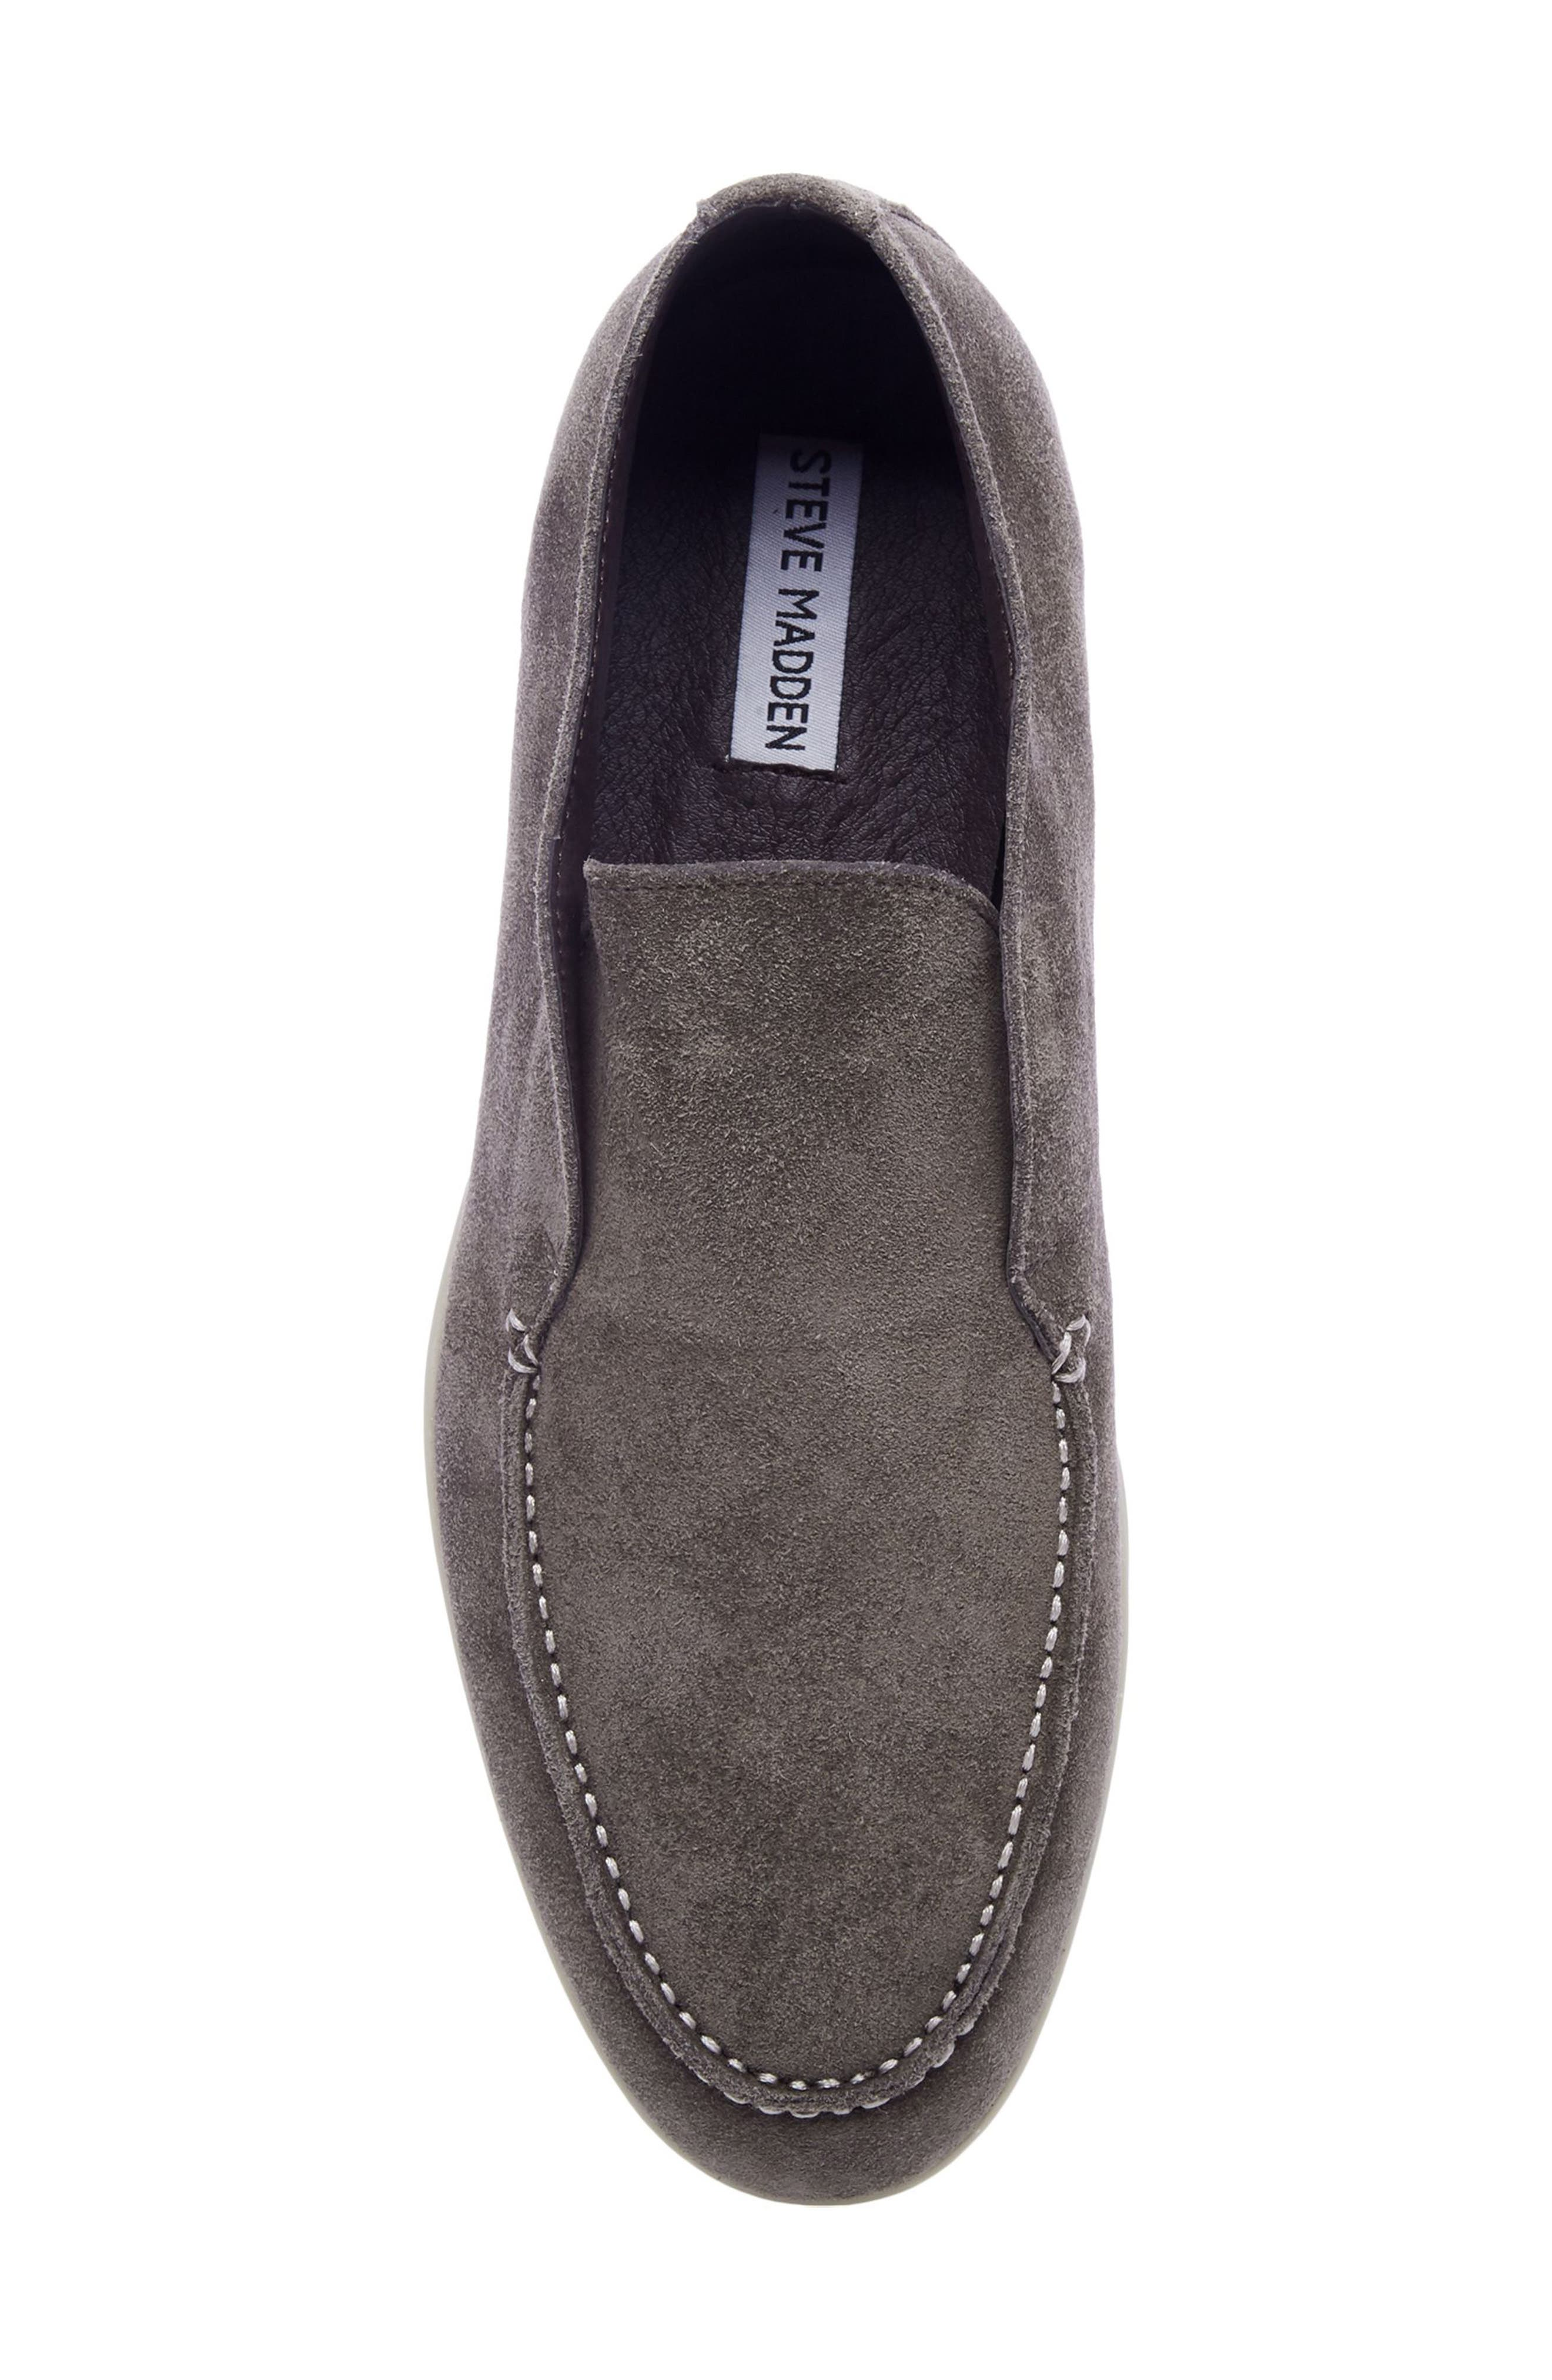 Lost Boot,                             Alternate thumbnail 5, color,                             Taupe Suede